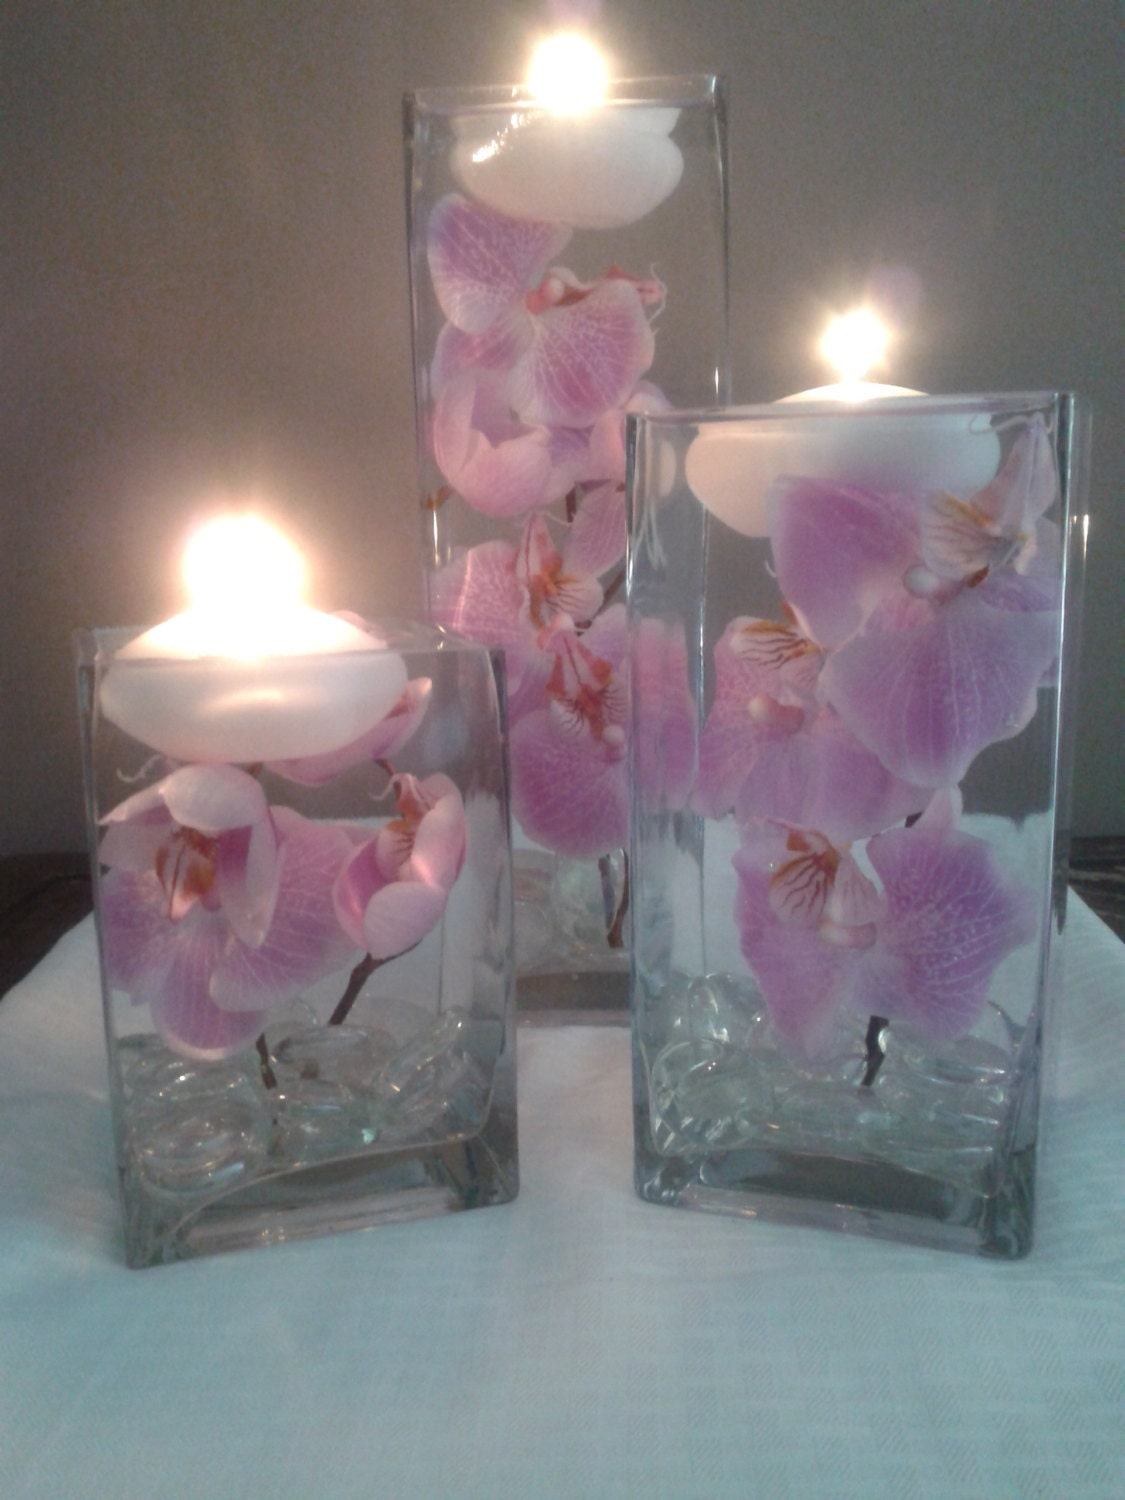 A Set Of Three Square Vases With Purple Orchids Floating In